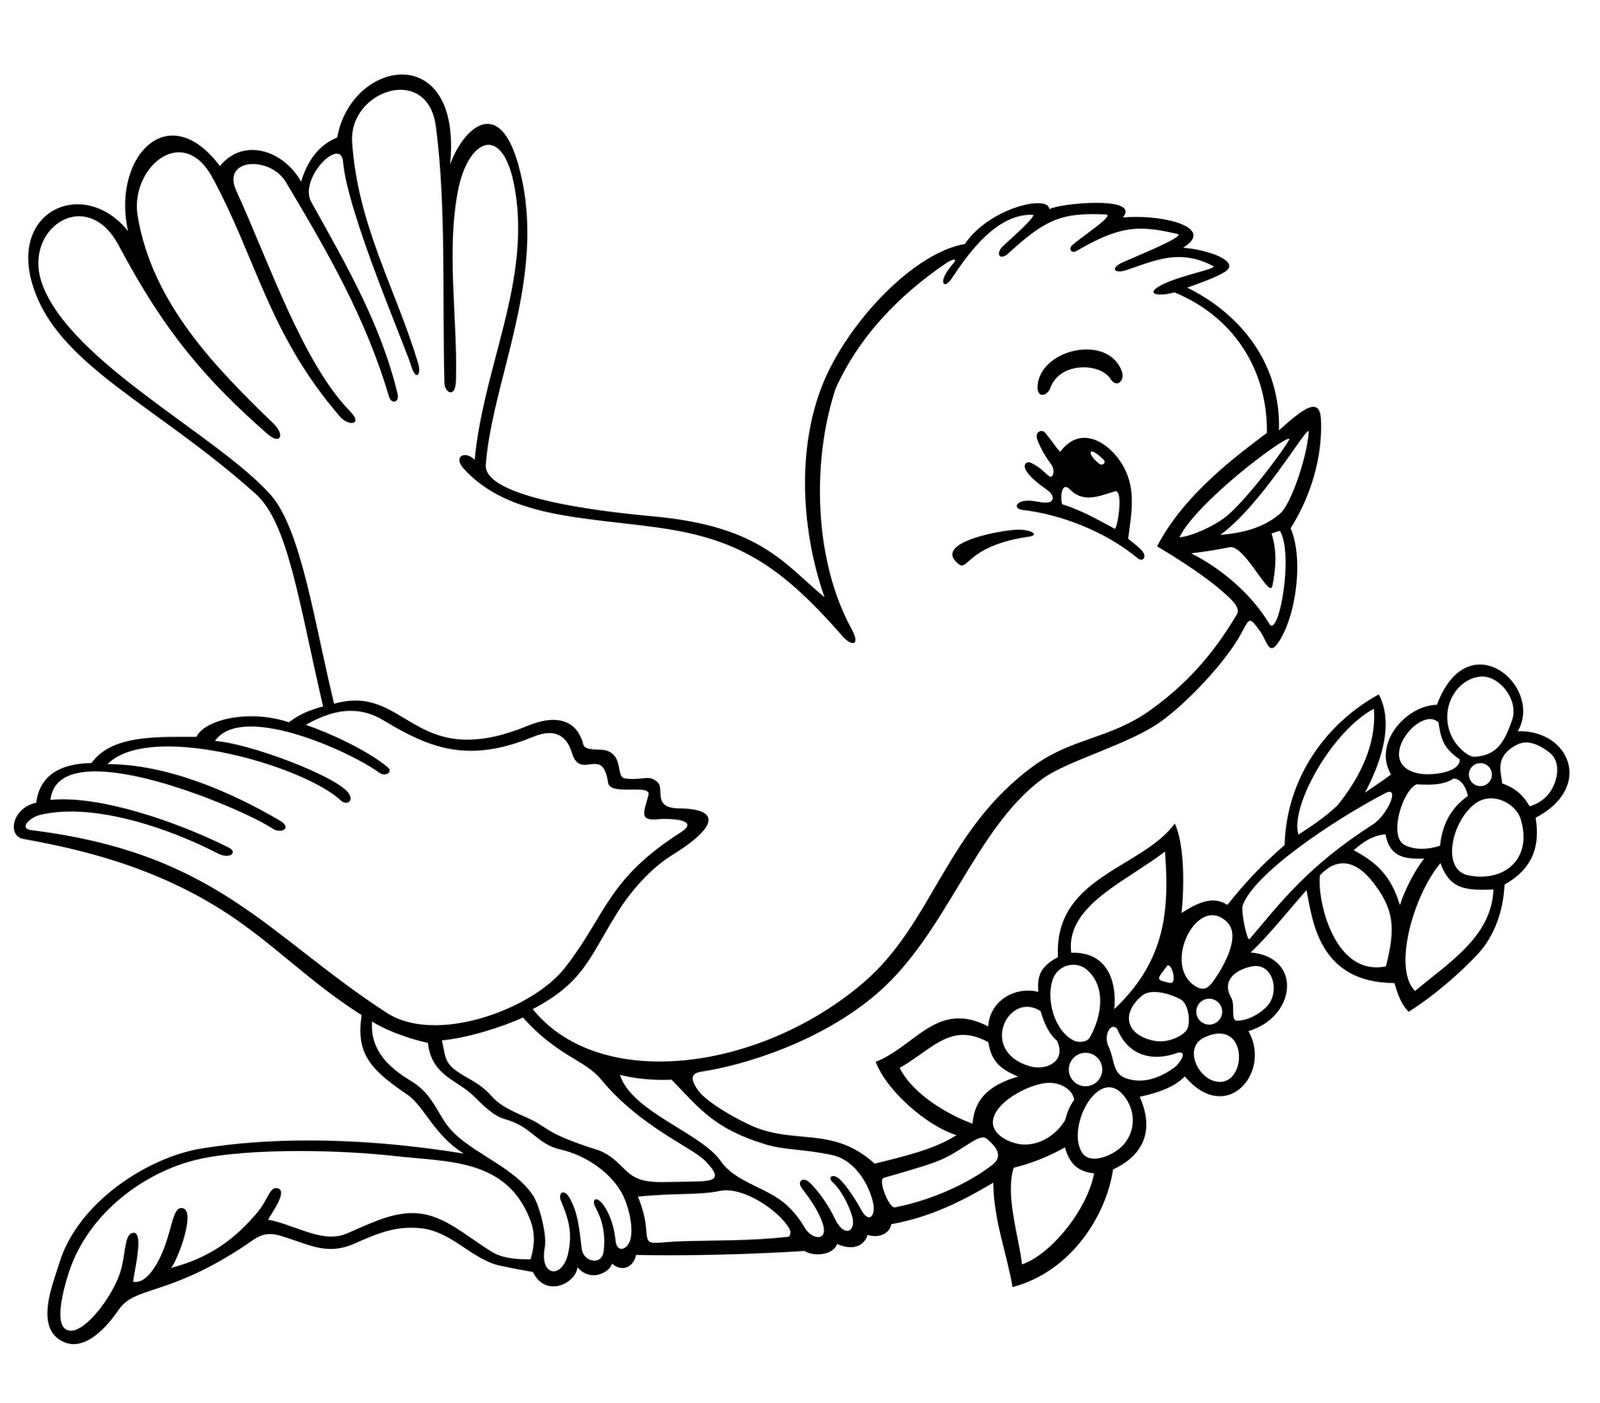 Easy Duck Drawing At Getdrawings Com Free For Personal Use Easy